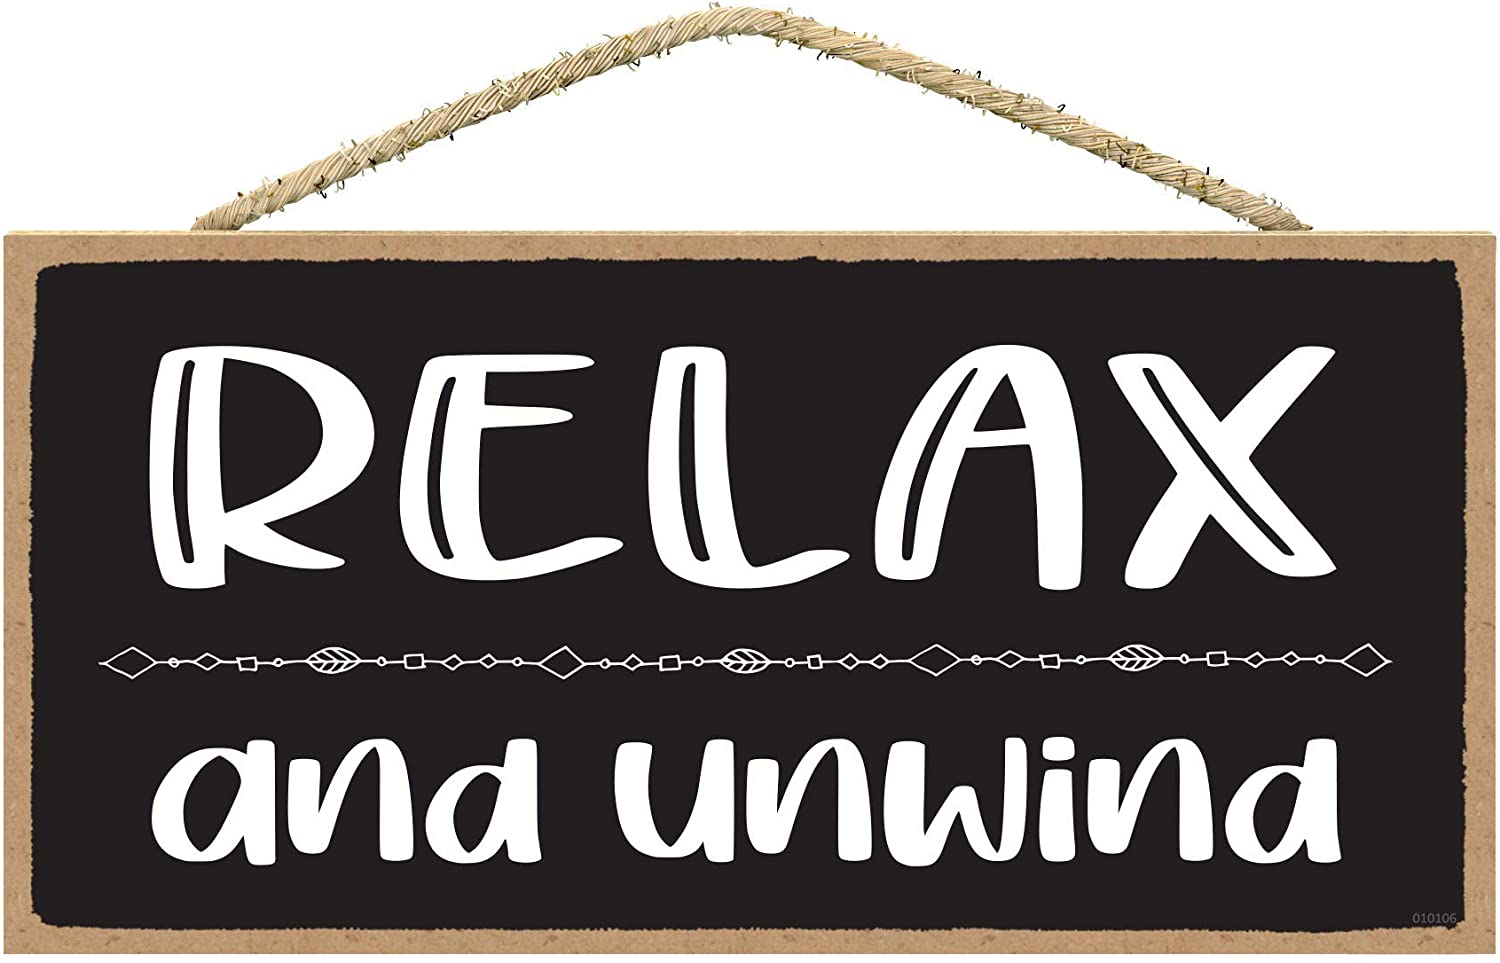 SARAH JOY'S Relax and Unwind - Relax Sign - Relax Signs for Bathroom - Relax Signs for Home Decor - Relax Wall Decor - Relax Bathroom Sign